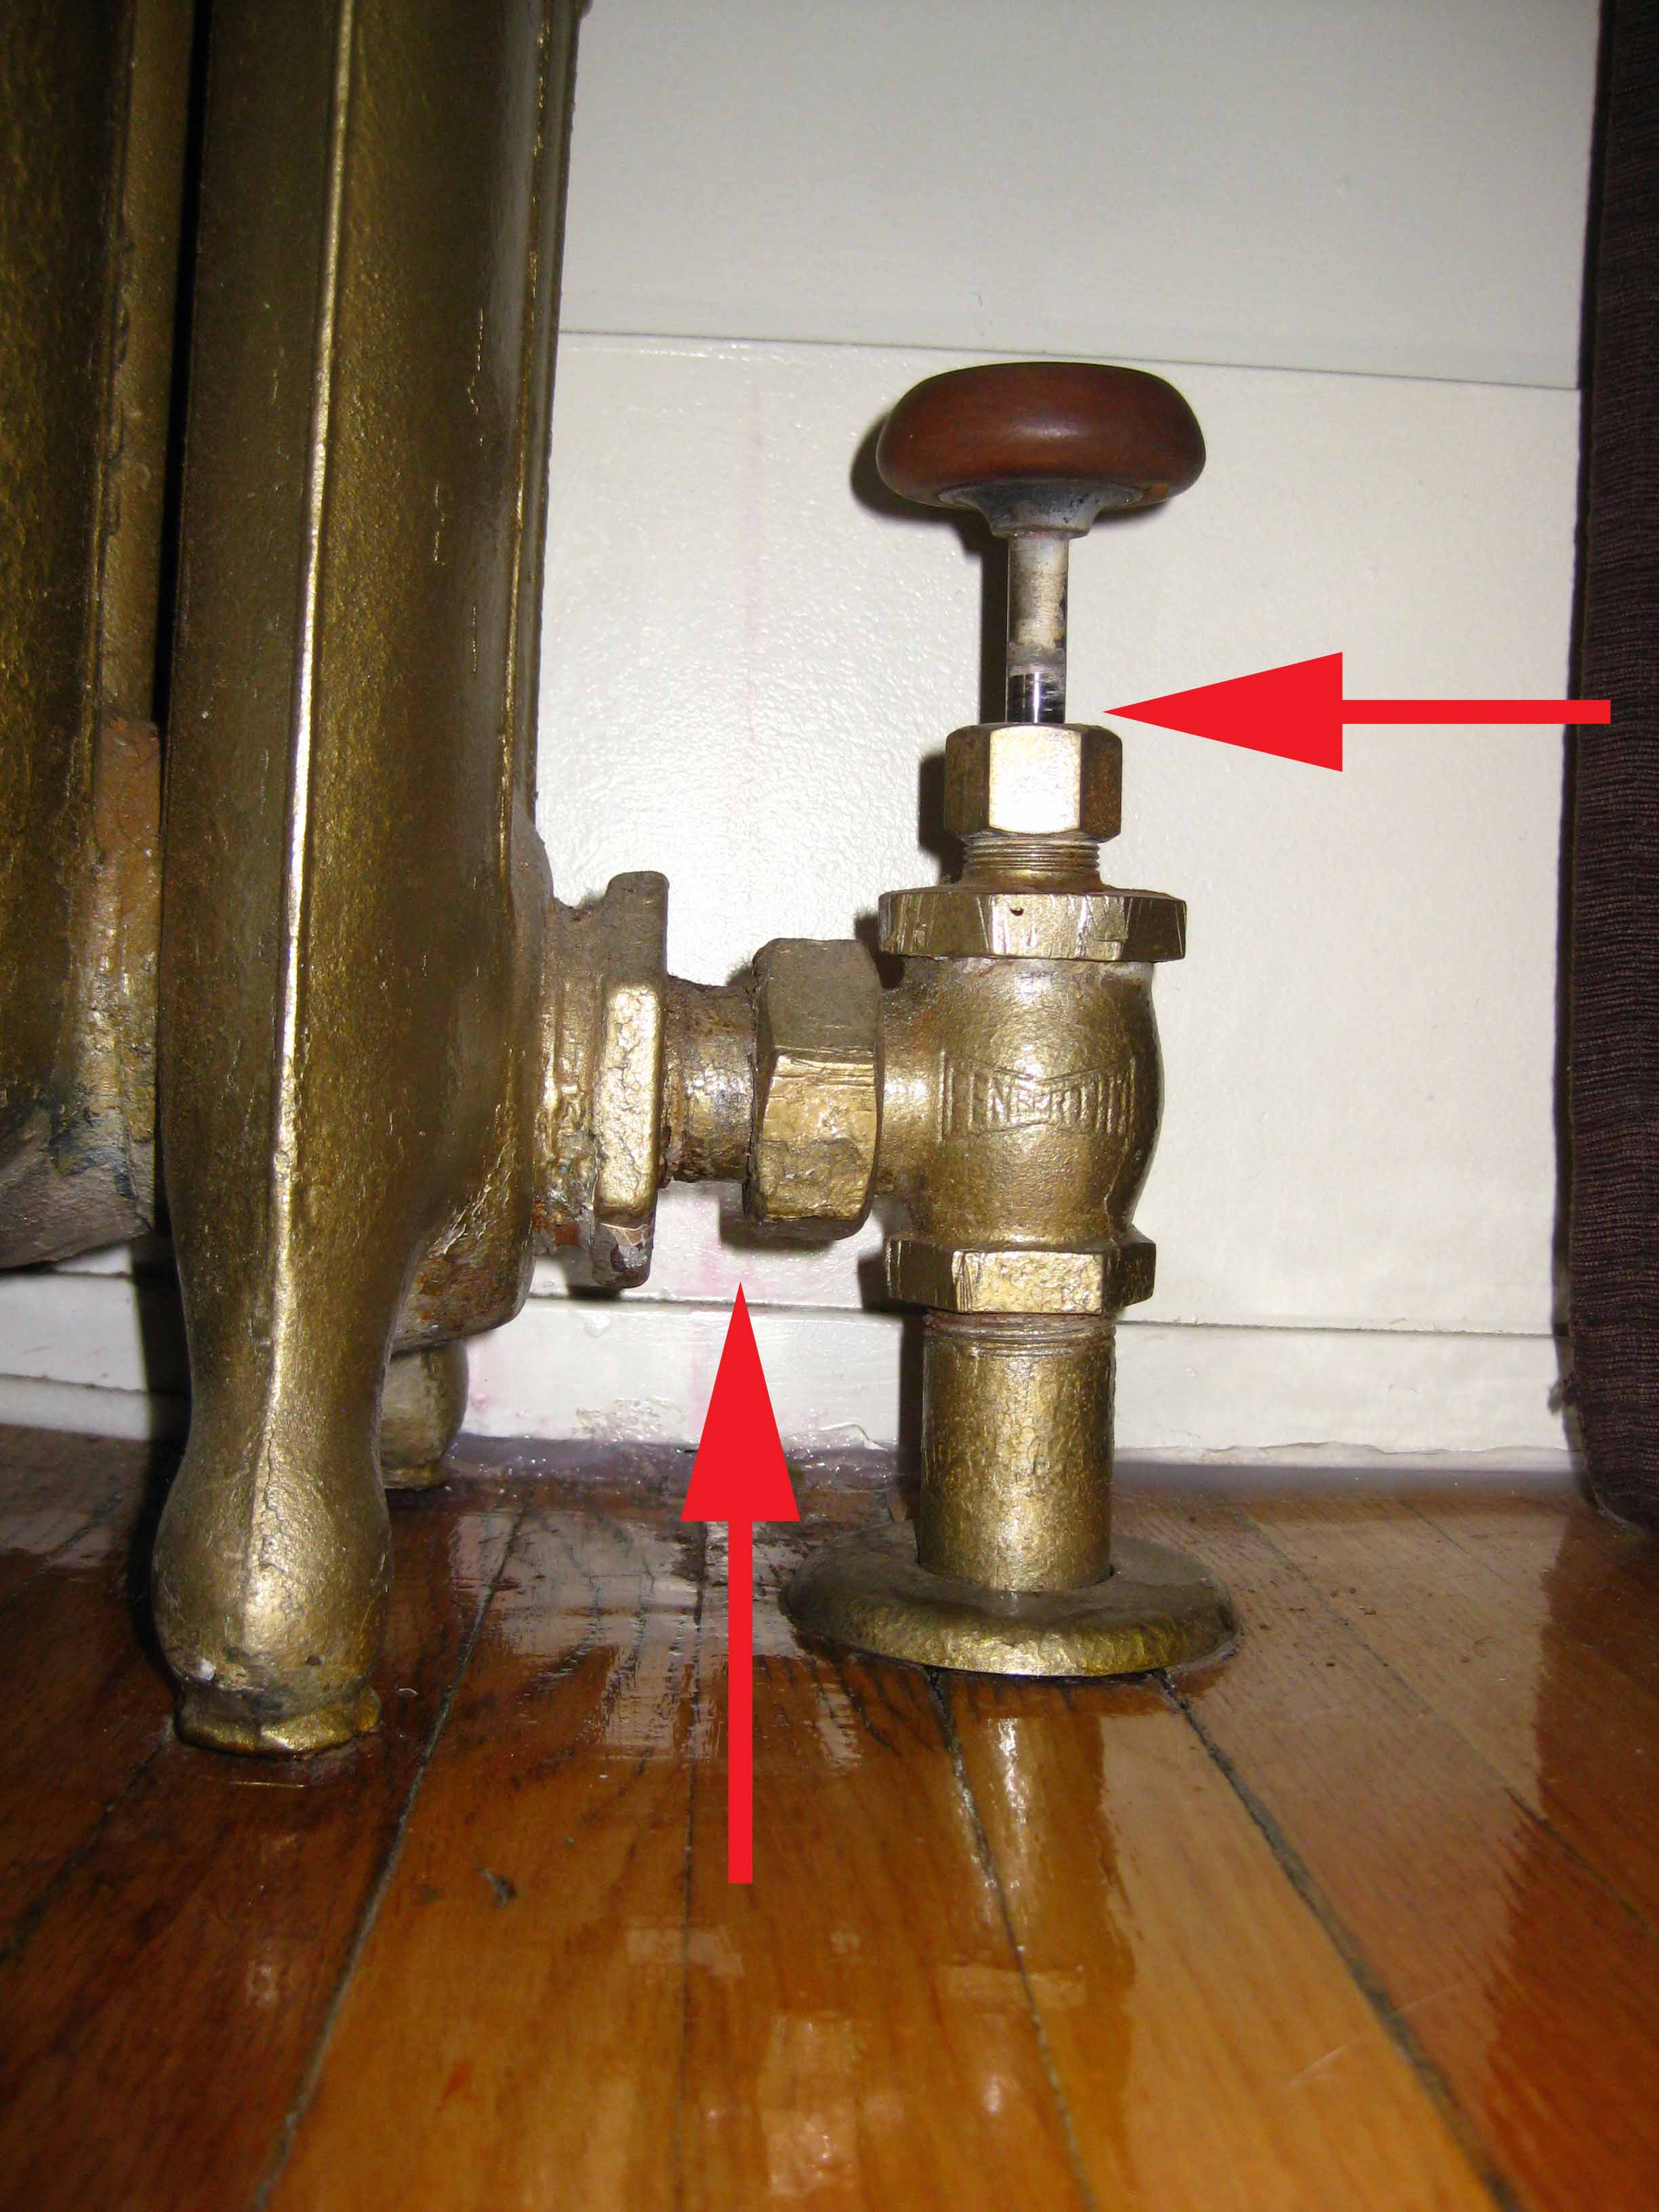 Steam Leak From Pipe : Apartment radiator leaking latest bestapartment